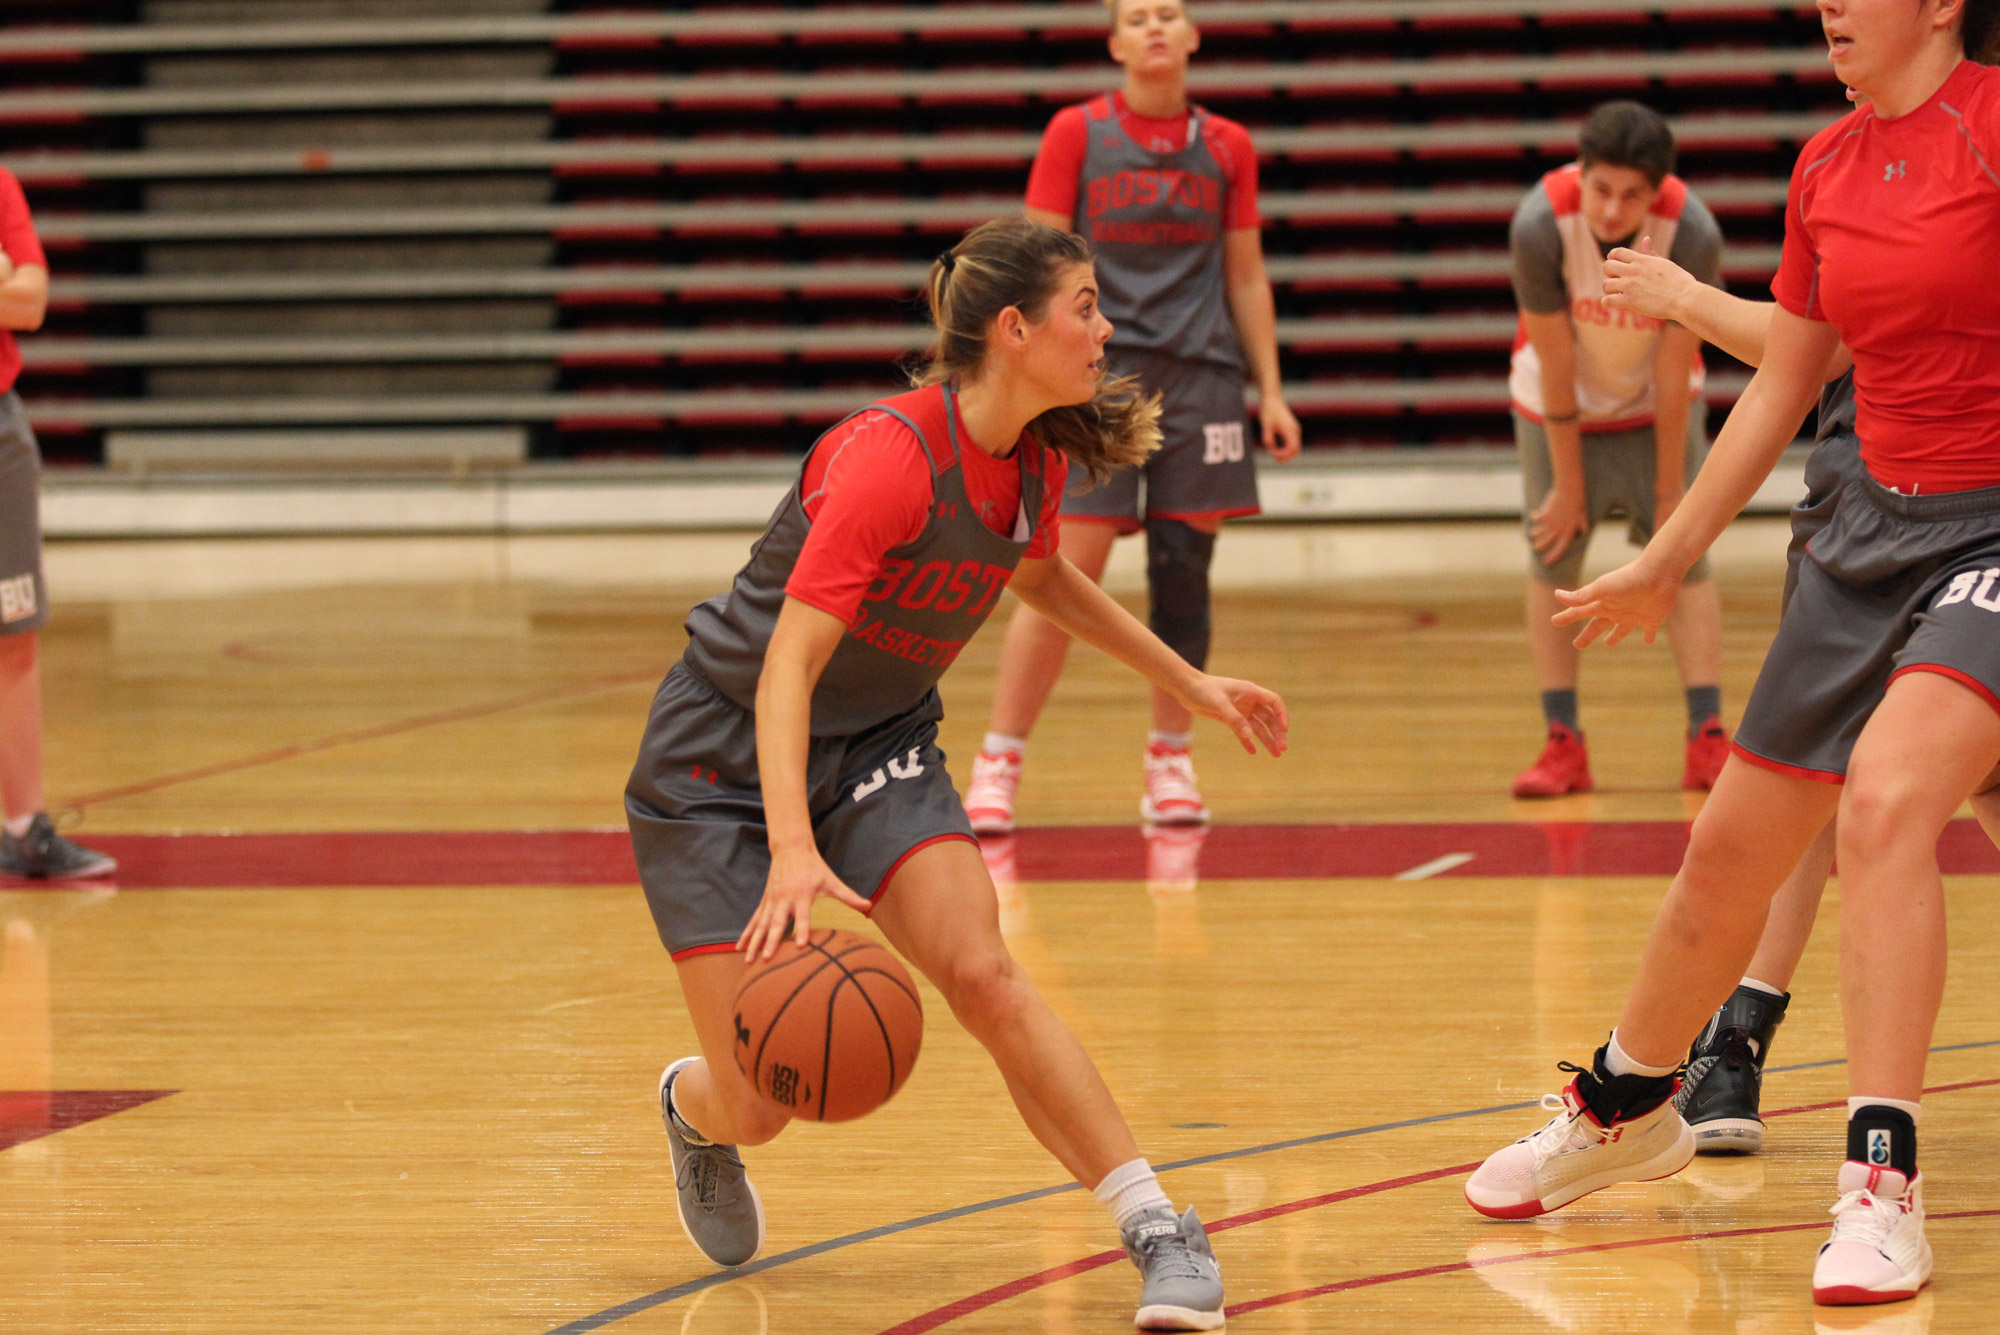 Katie Nelson (CGS'19, Questrom'21) dribbles a basketball